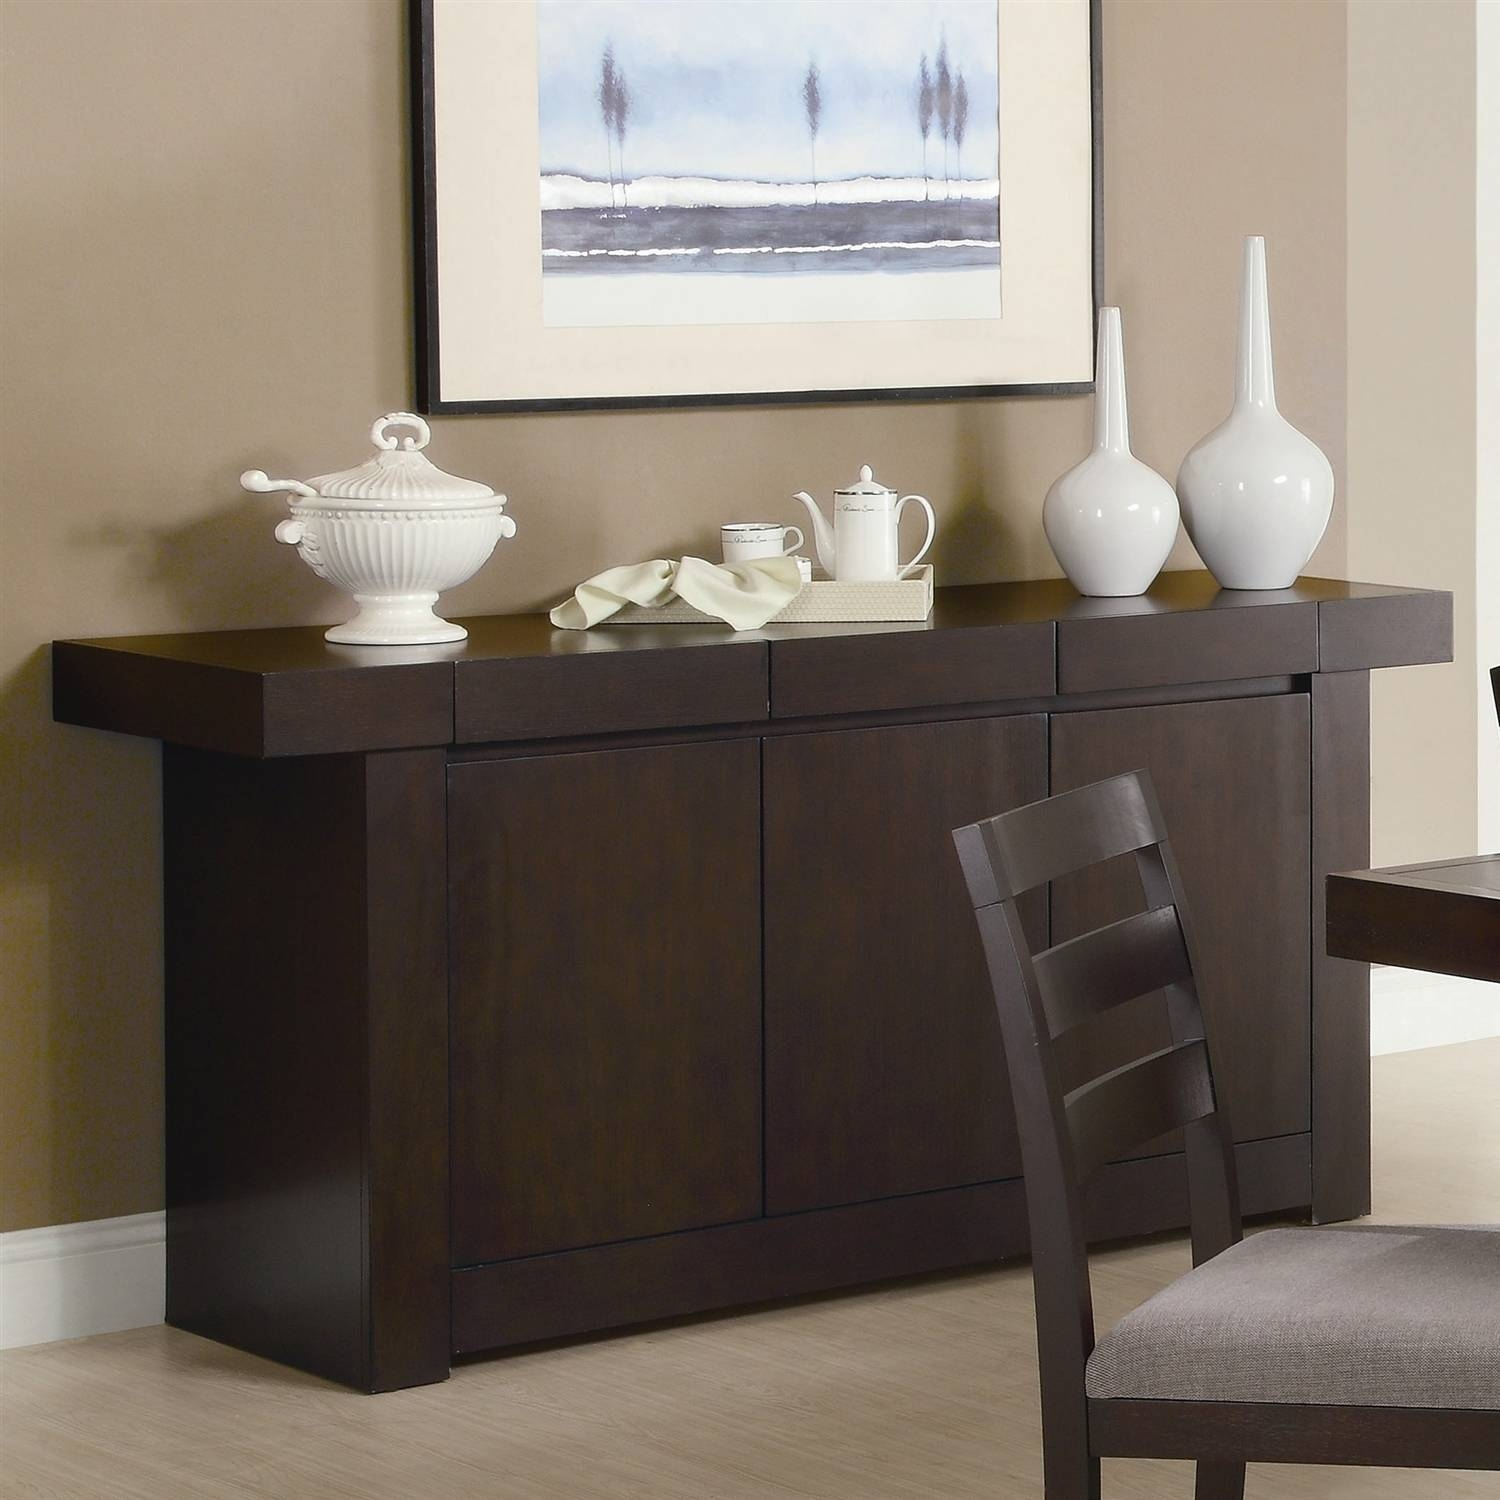 Dining Room : Lovely Sideboard And Hutch Furniture Dining Room Inside Contemporary Sideboard Cabinet (View 15 of 20)